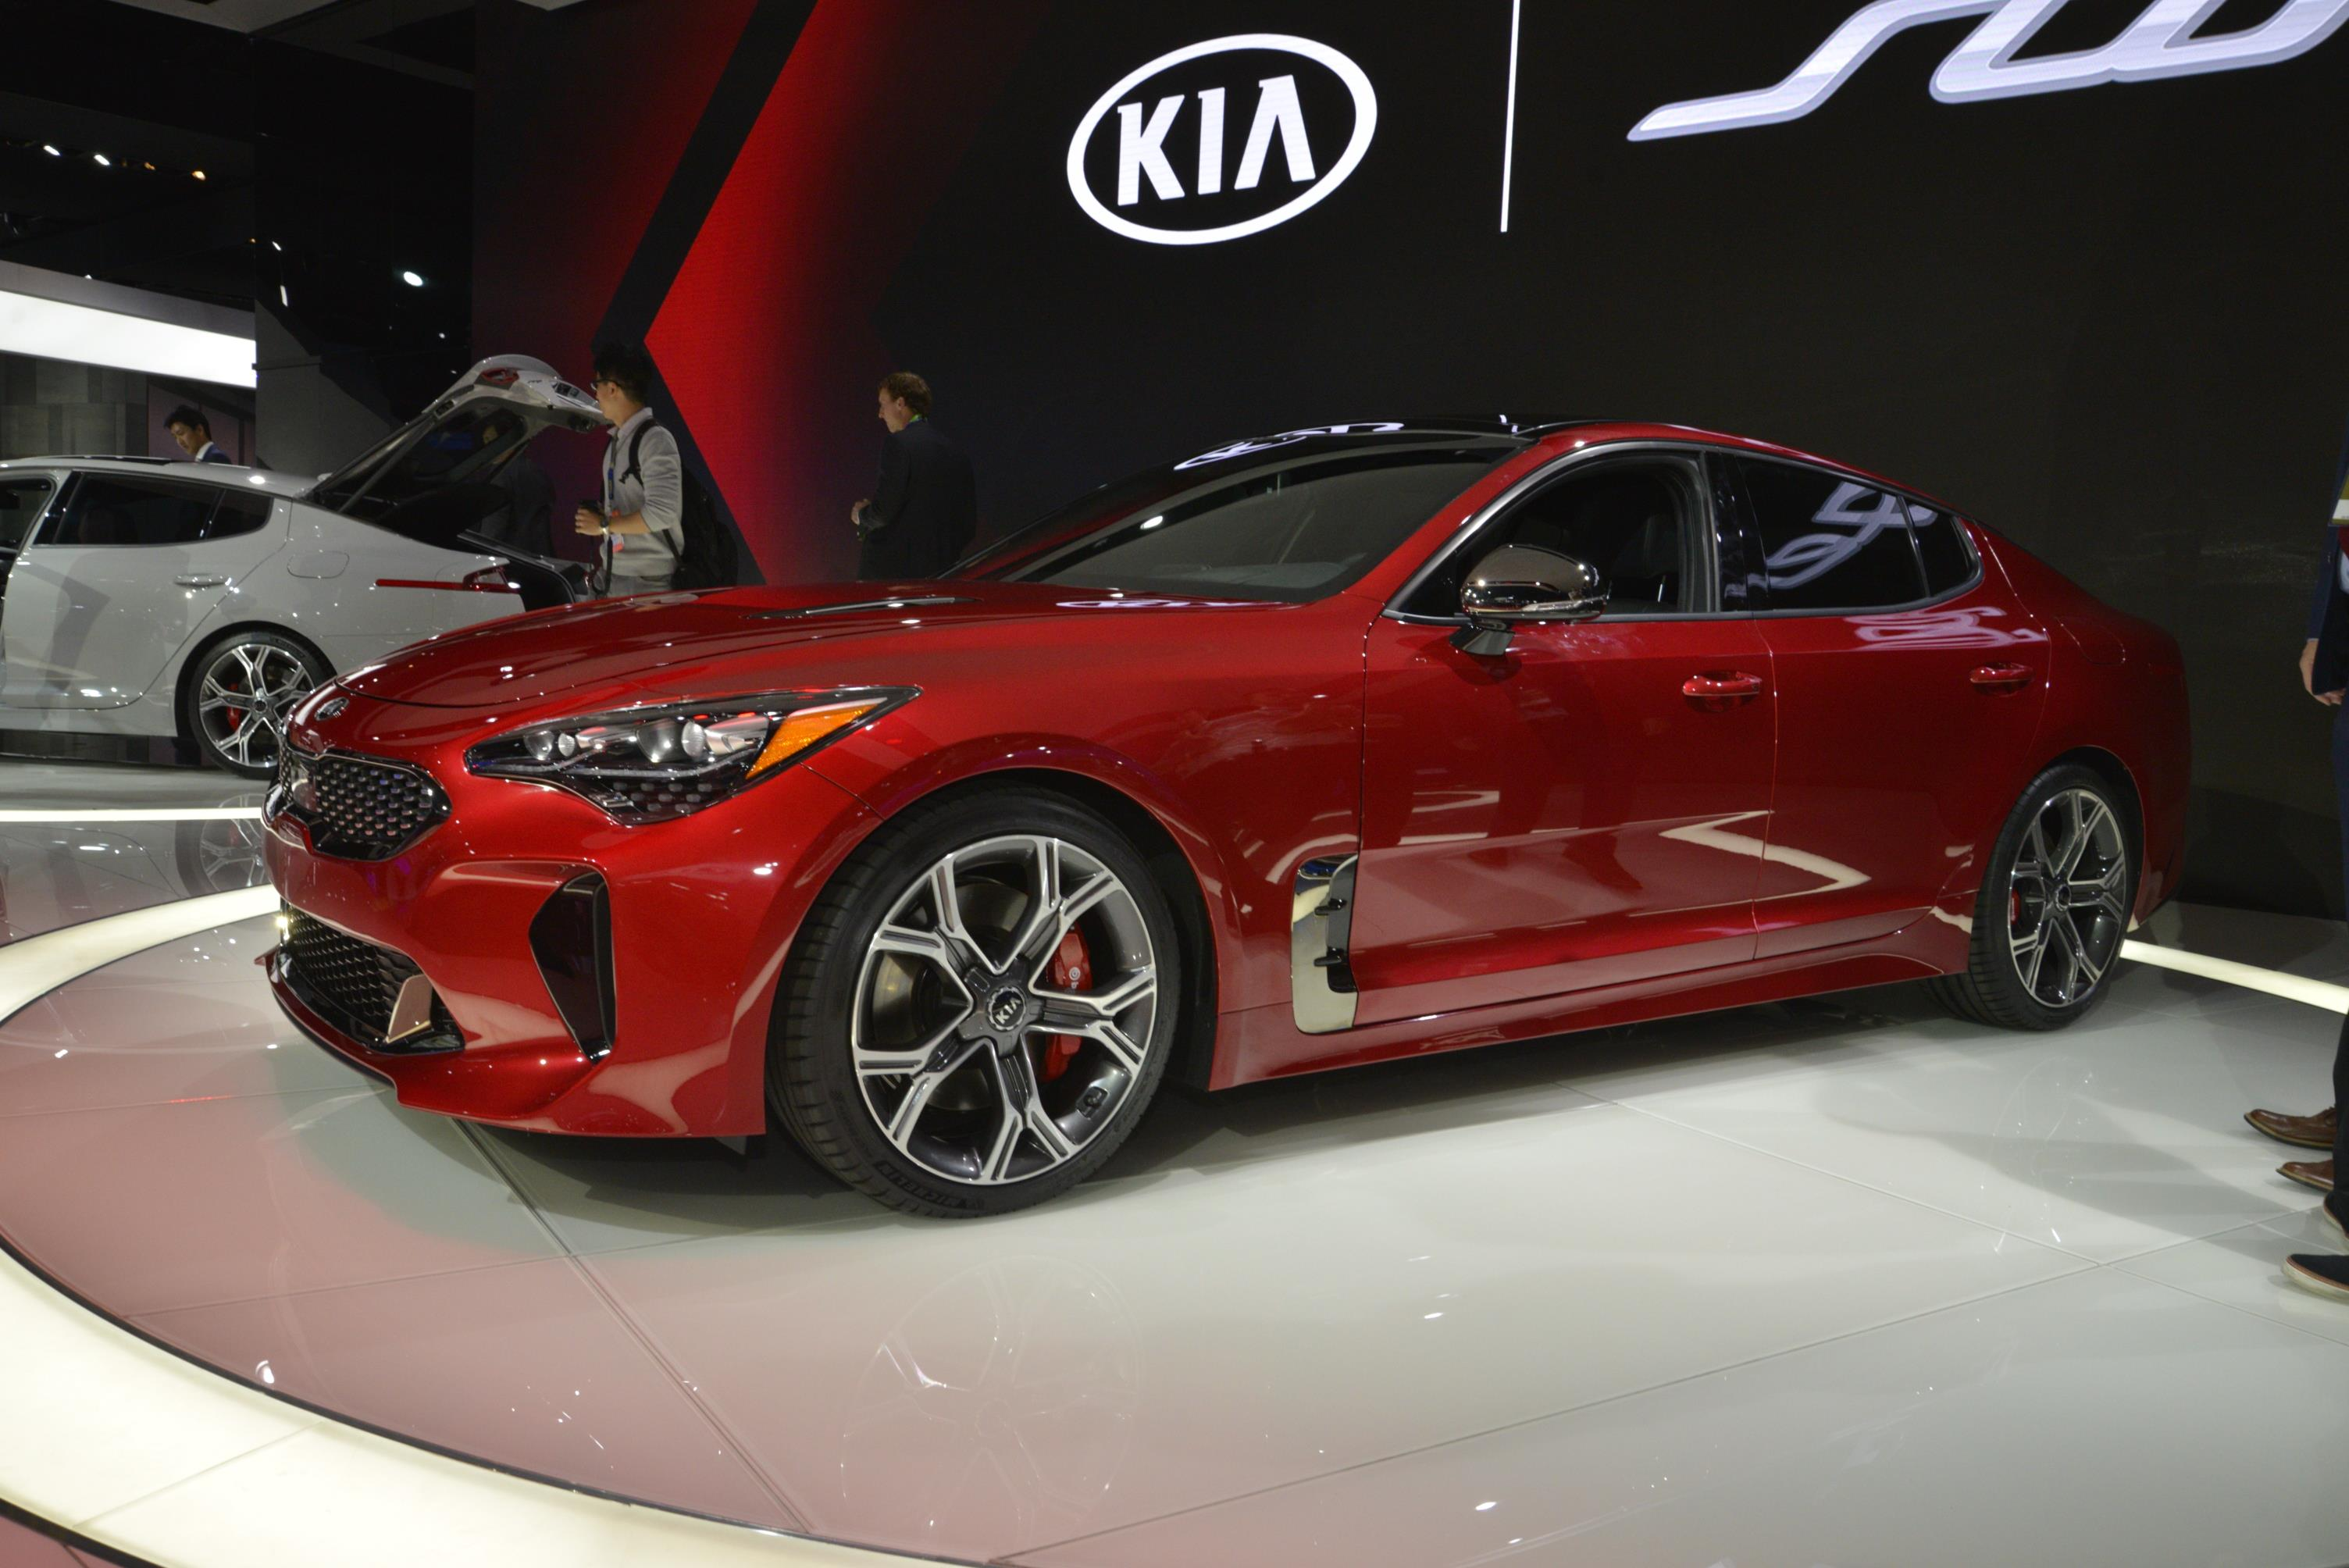 2018 Kia Stinger Looks Like A Porsche Panamera In Nardo Gray Paint Autoevolution